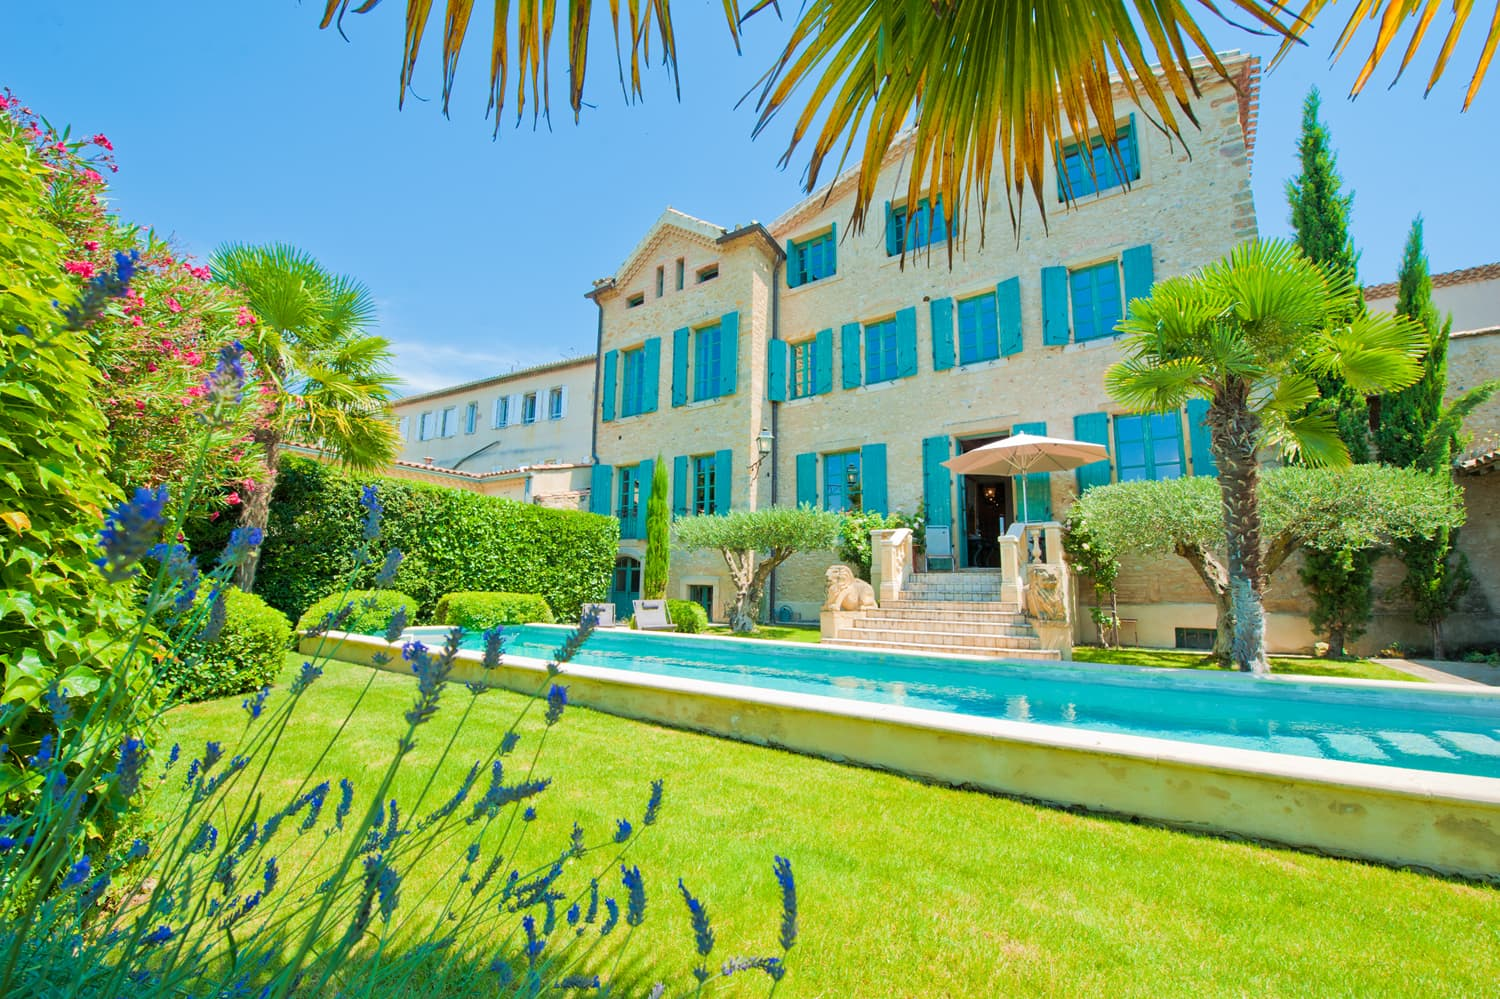 Rental home in Languedoc with private pool and garden